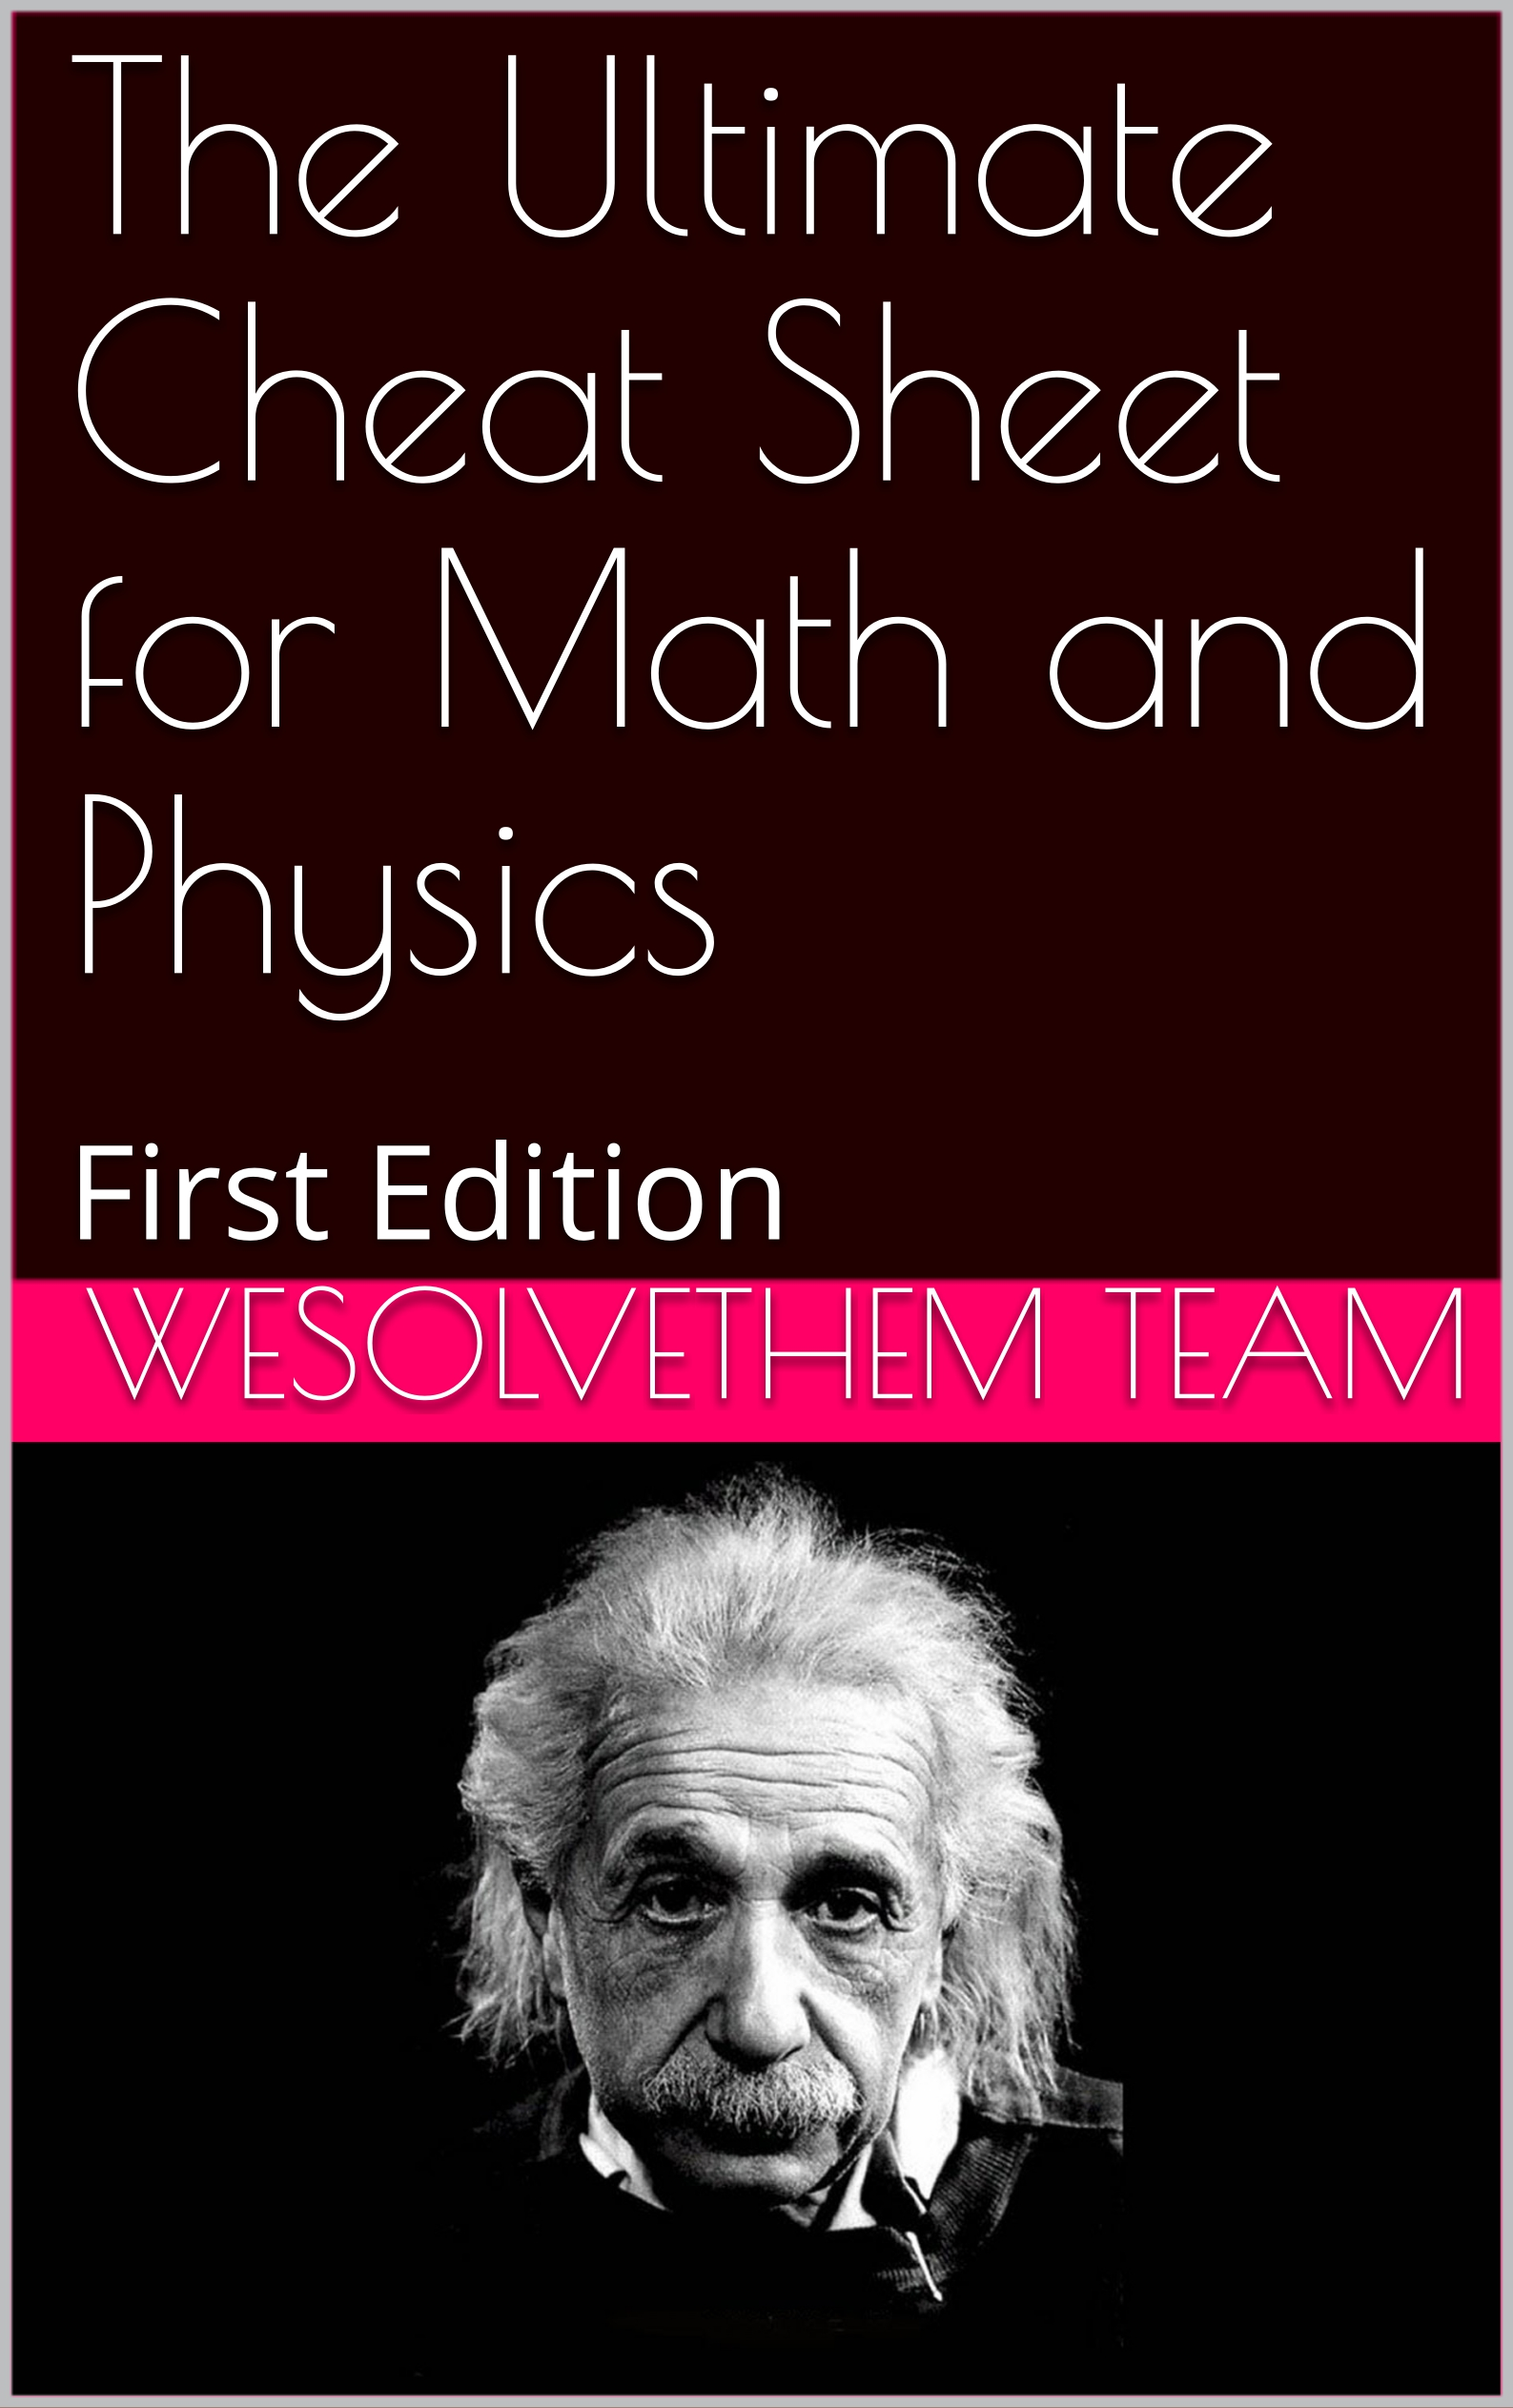 The Ultimate Cheat Sheet for Math and Physics